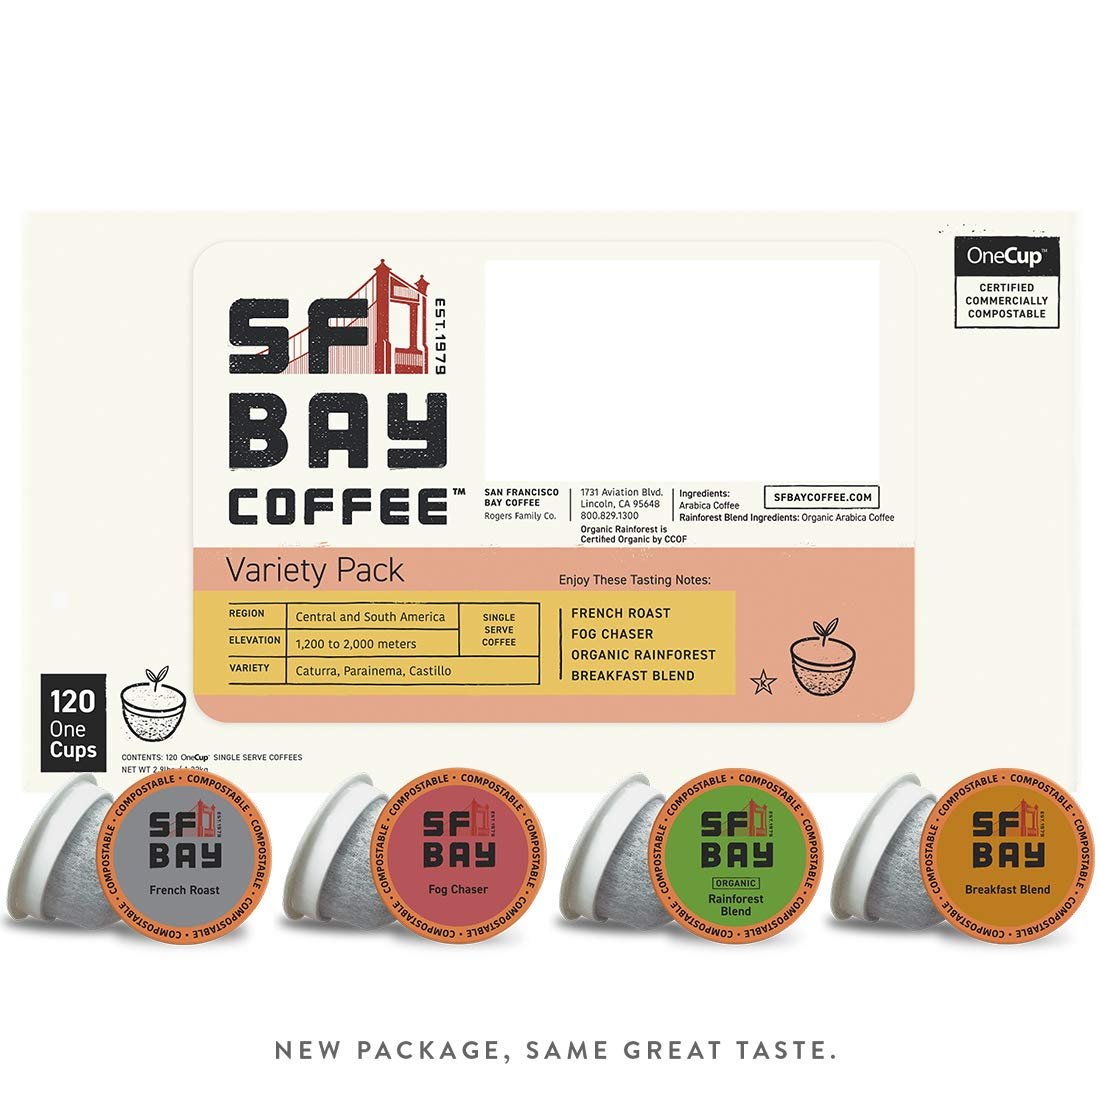 San Francisco Bay OneCup, Variety Pack, Single Serve Coffee K-Cup Pods (120 Count), French Roast - Fog Chaser - Rainforest - Breakfast Blend, Keurig Compatible by SAN FRANCISCO BAY